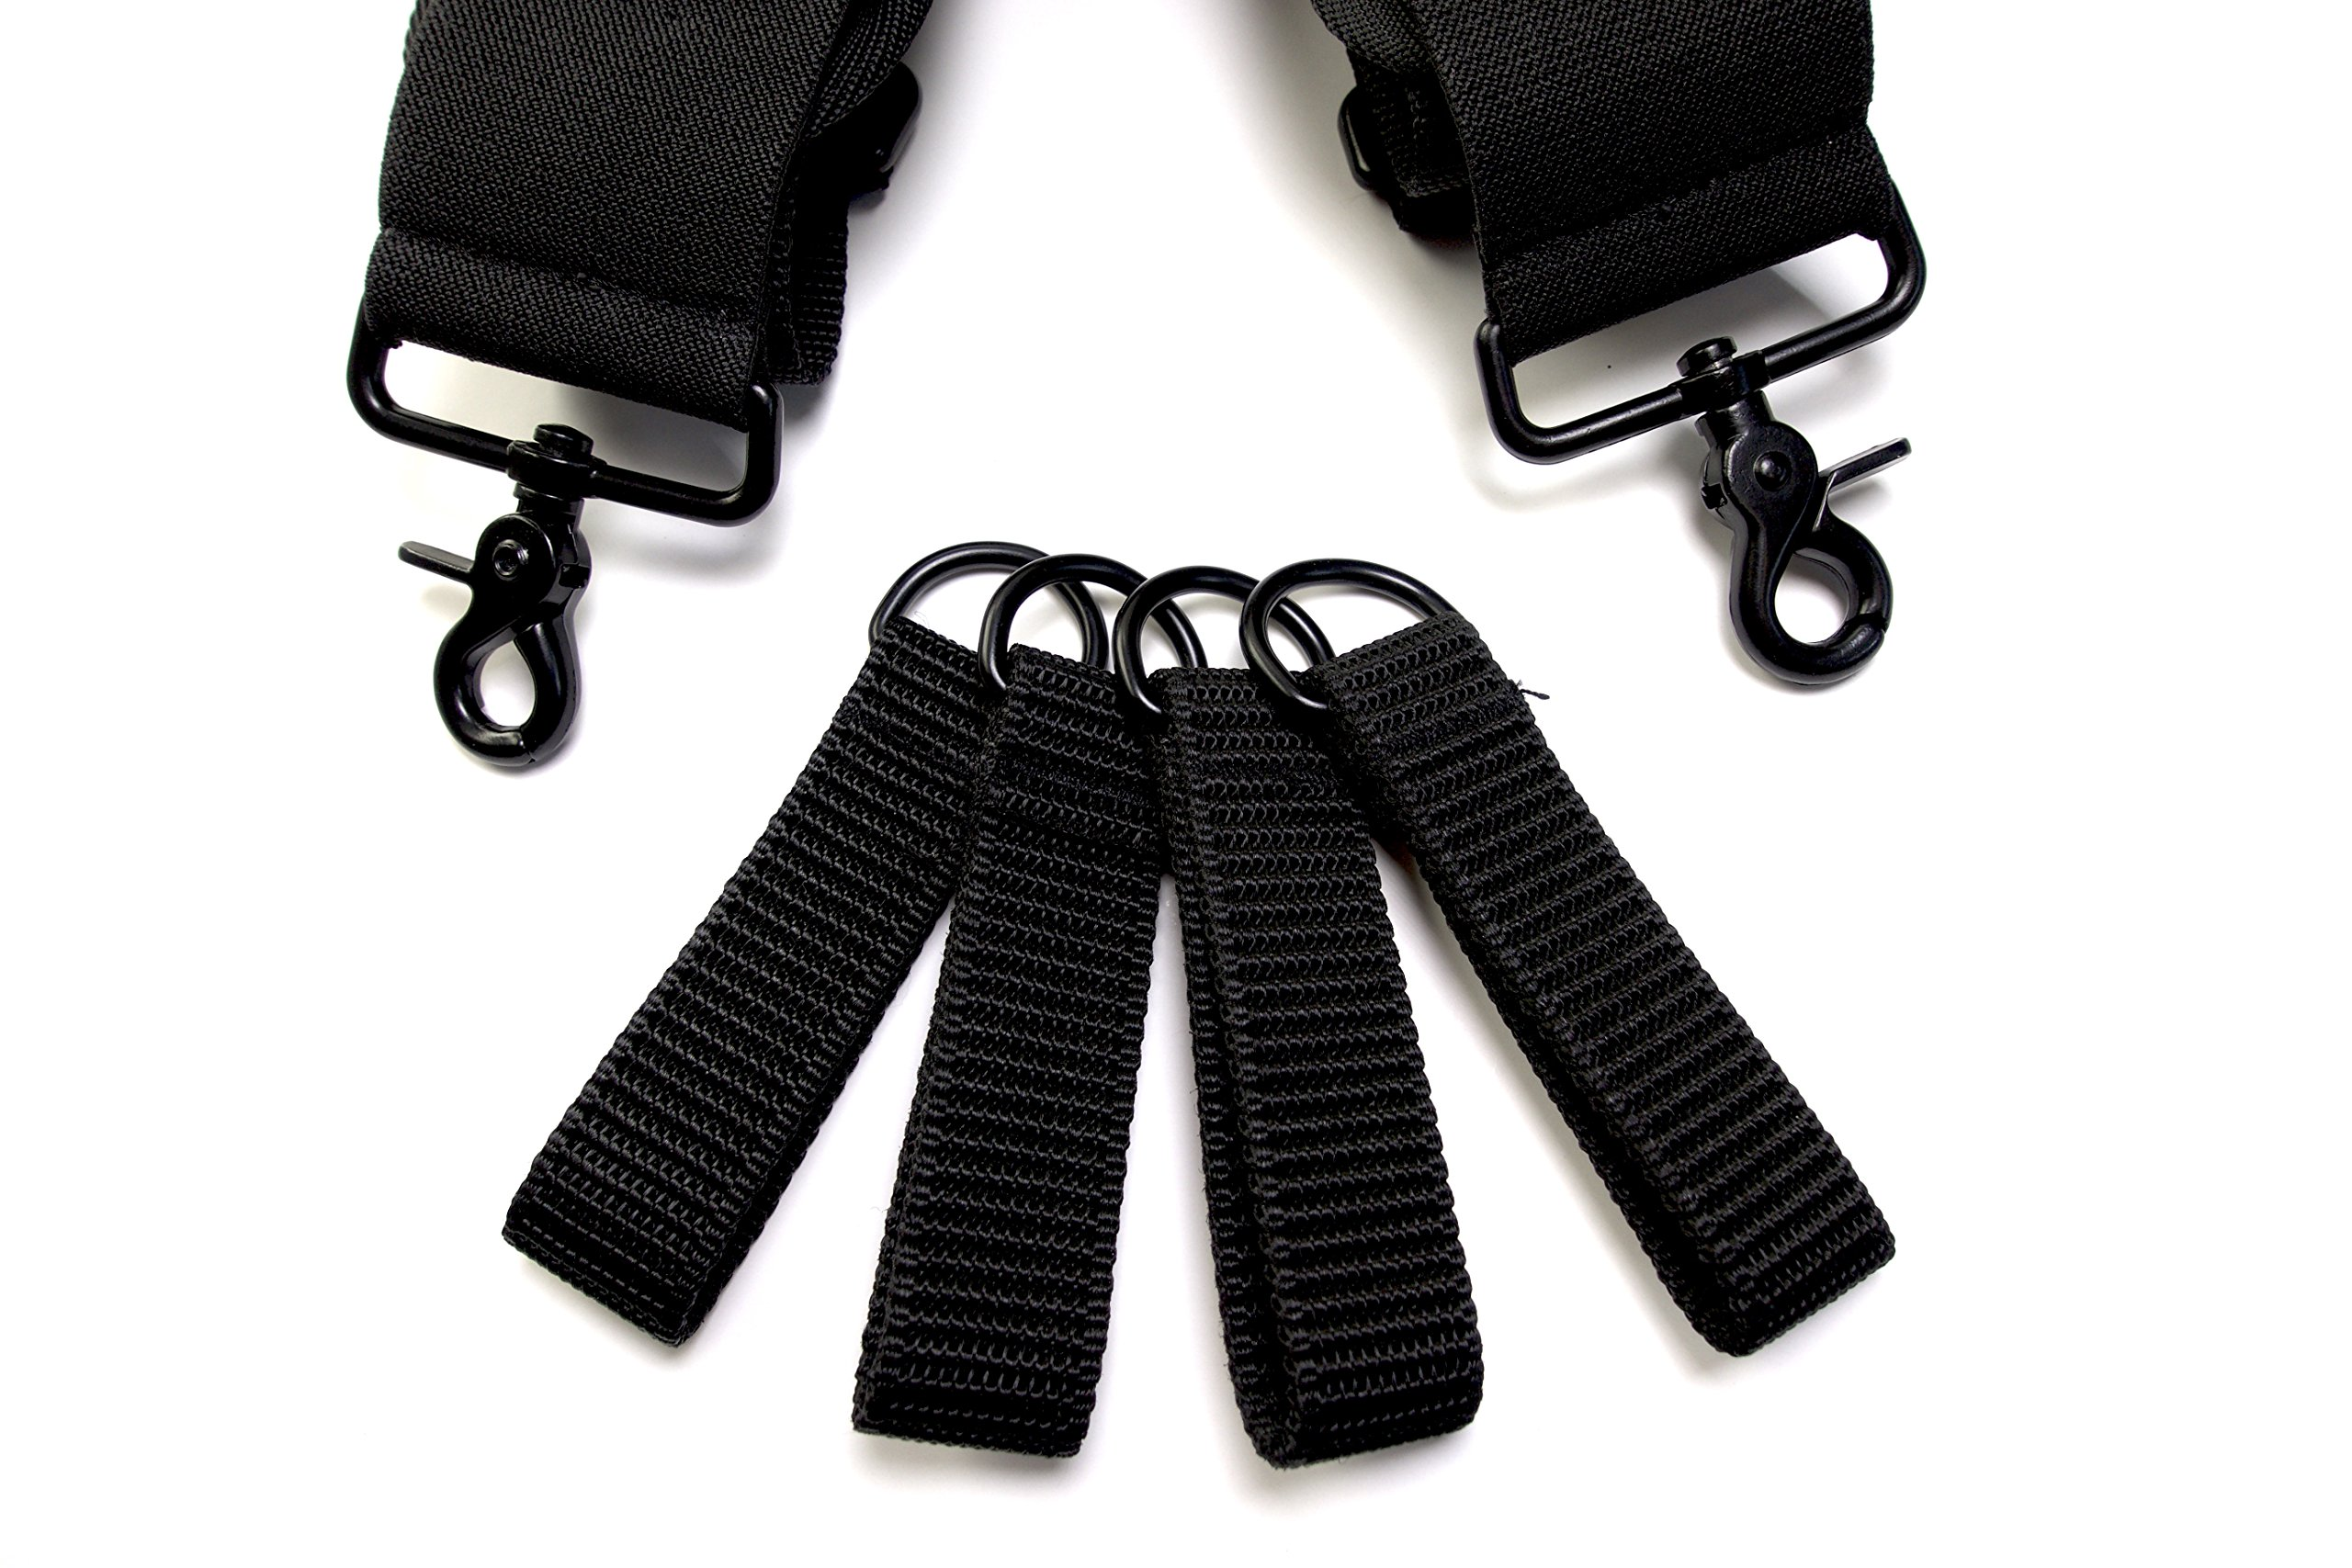 Tool Belt Suspenders- Heavy Duty Work Suspenders for Men, Adjustable, Comfortable and Padded -Includes- Tool Belt Loops and Strong Trigger Snap Clips by ToolsGold by ToolsGold (Image #8)